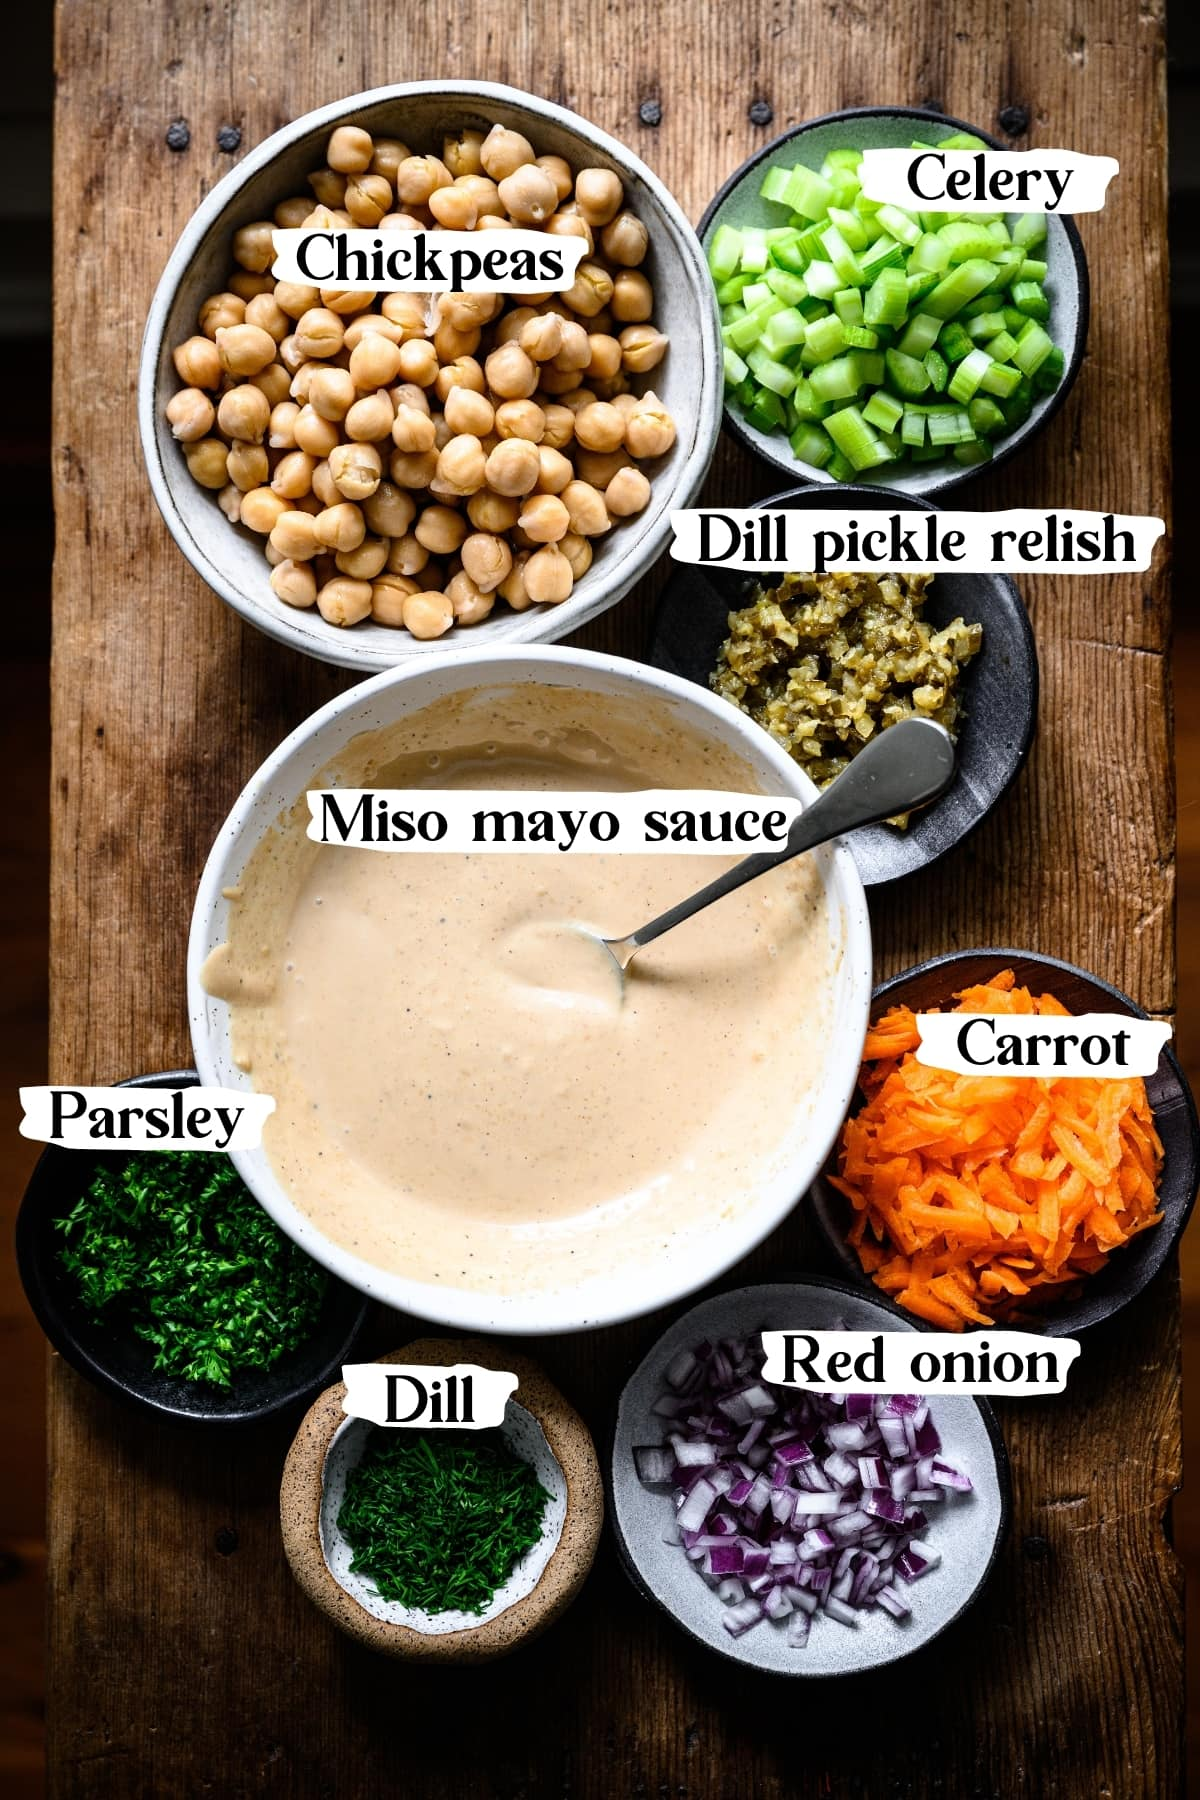 overhead view of ingredients for vegan tuna salad, including chickpeas, carrot, celery, onion, dill, parsley and miso mayo sauce.